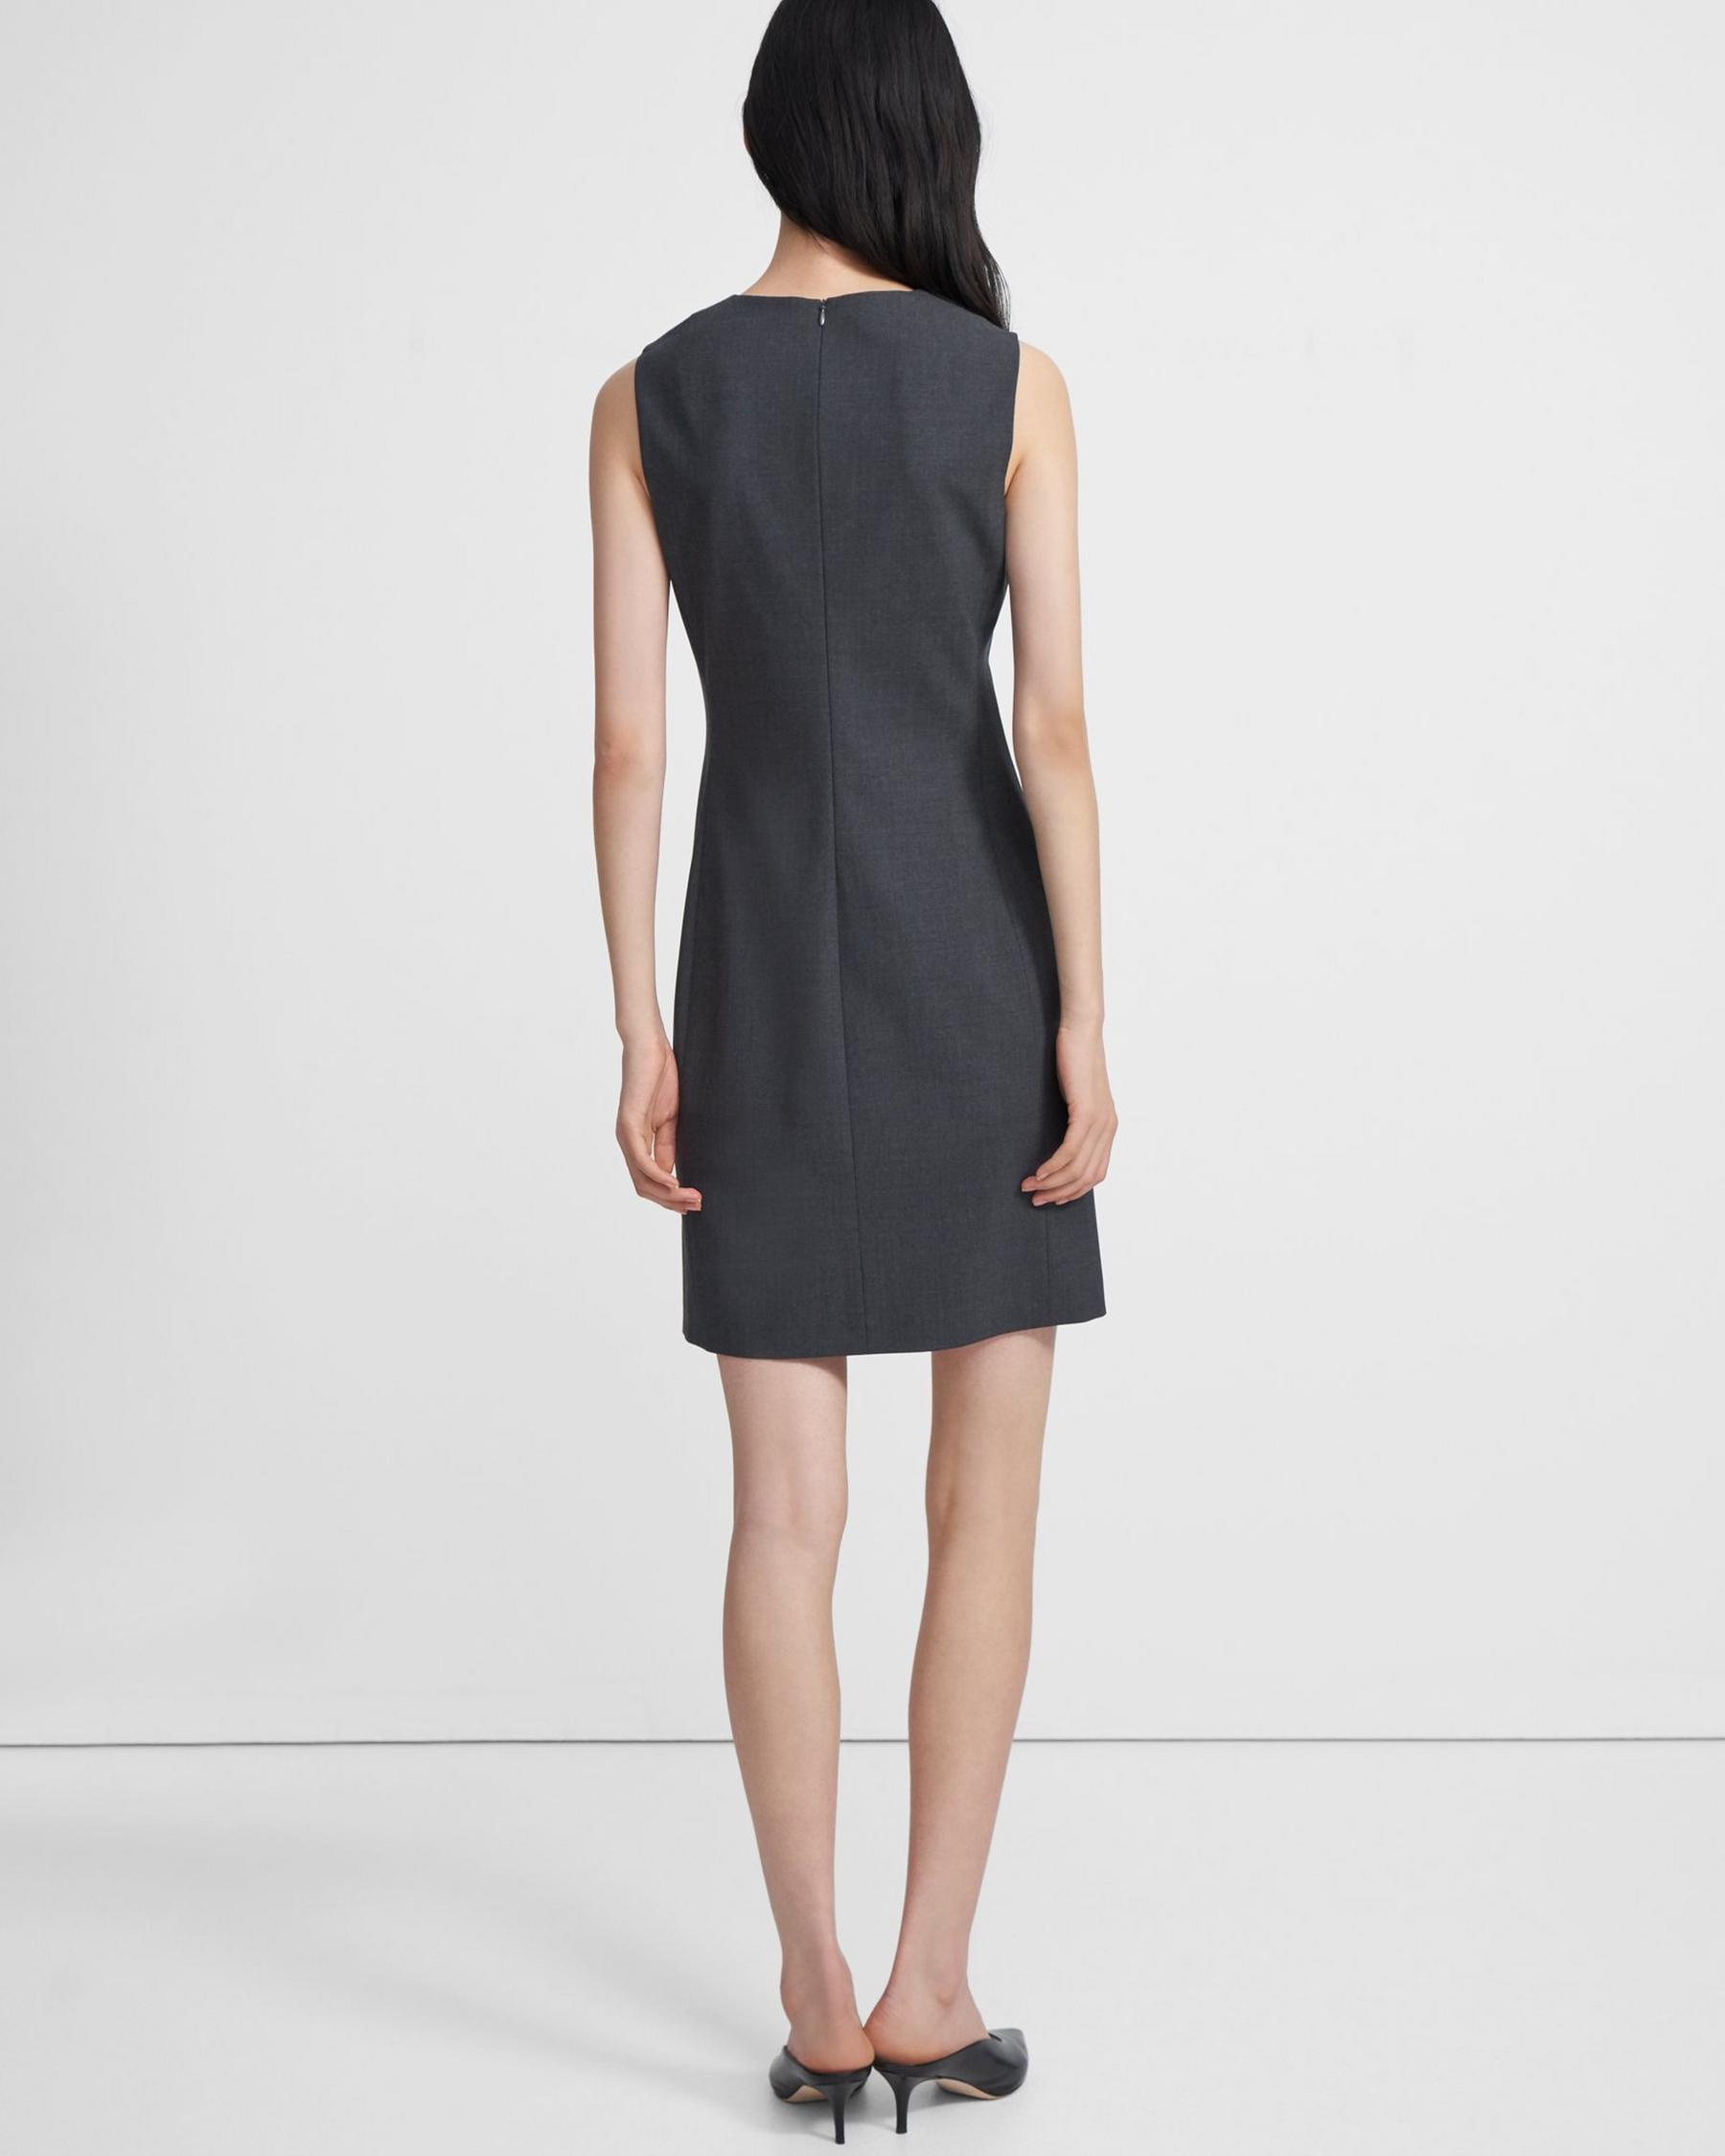 Sleeveless Fitted Dress in Good Wool 2